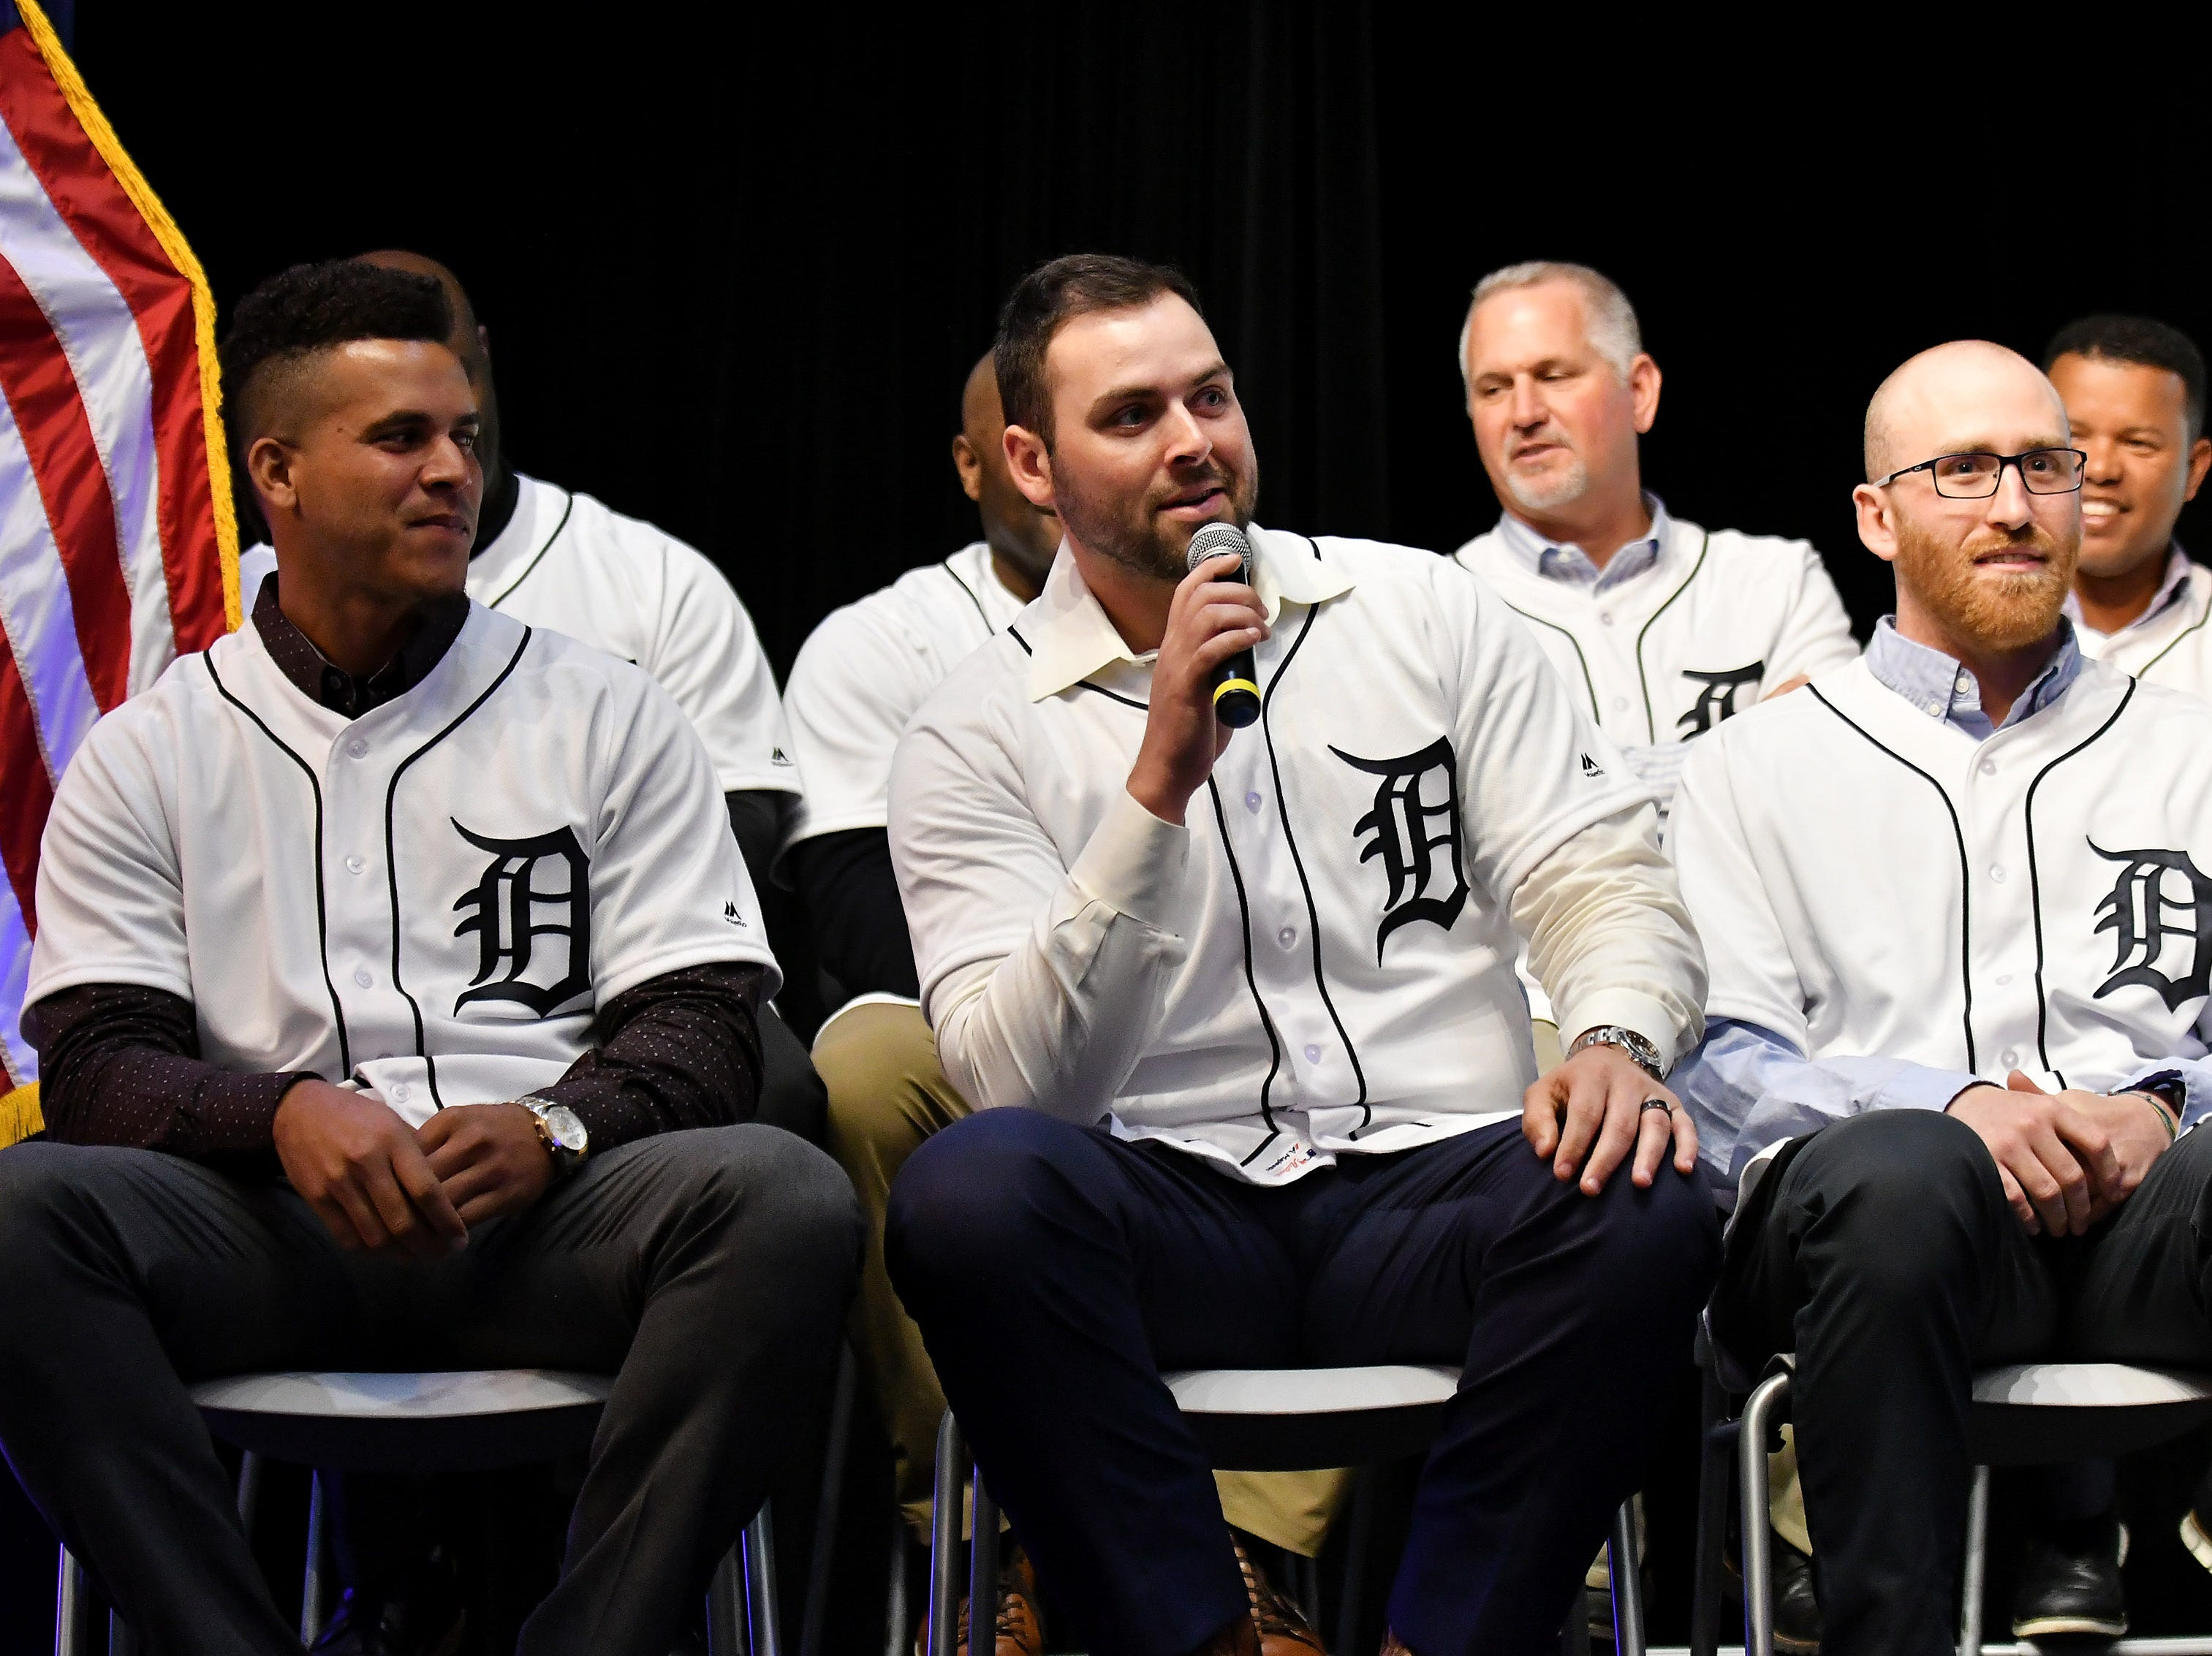 Tigers pitcher Michael Fulmer, center, answers a question and talks about doing some part-time plumbing in the off season during a stop on the 2019 Detroit Tigers Winter Caravan at the Novi Civic Center in Novi, Mich. on Jan. 24, 2019. Jose Fernandez is at left and Reed Garrett, right.(Robin Buckson / The Detroit News)